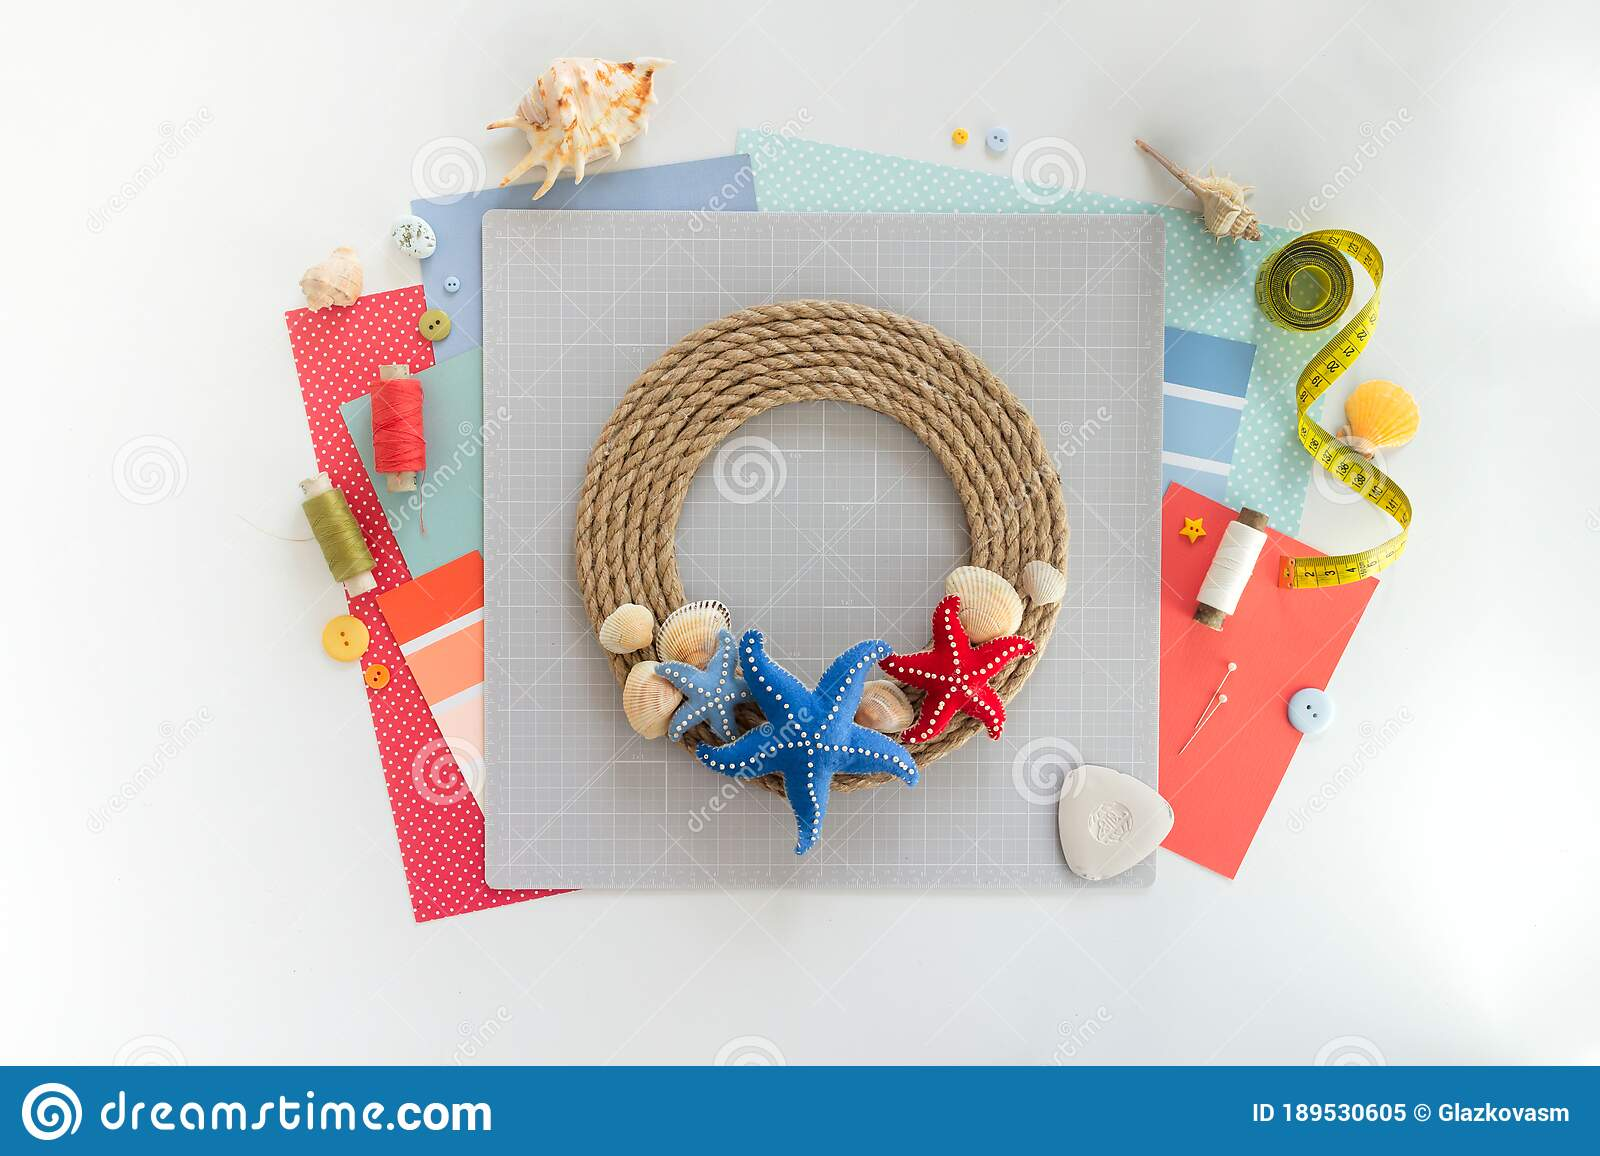 Diy Instruction Step By Step Tutorial Making Summer Decor Wreath Of Rope With Sea Stars Made Of Felt Craft Tools Stock Image Image Of Home Scrapbooking 189530605